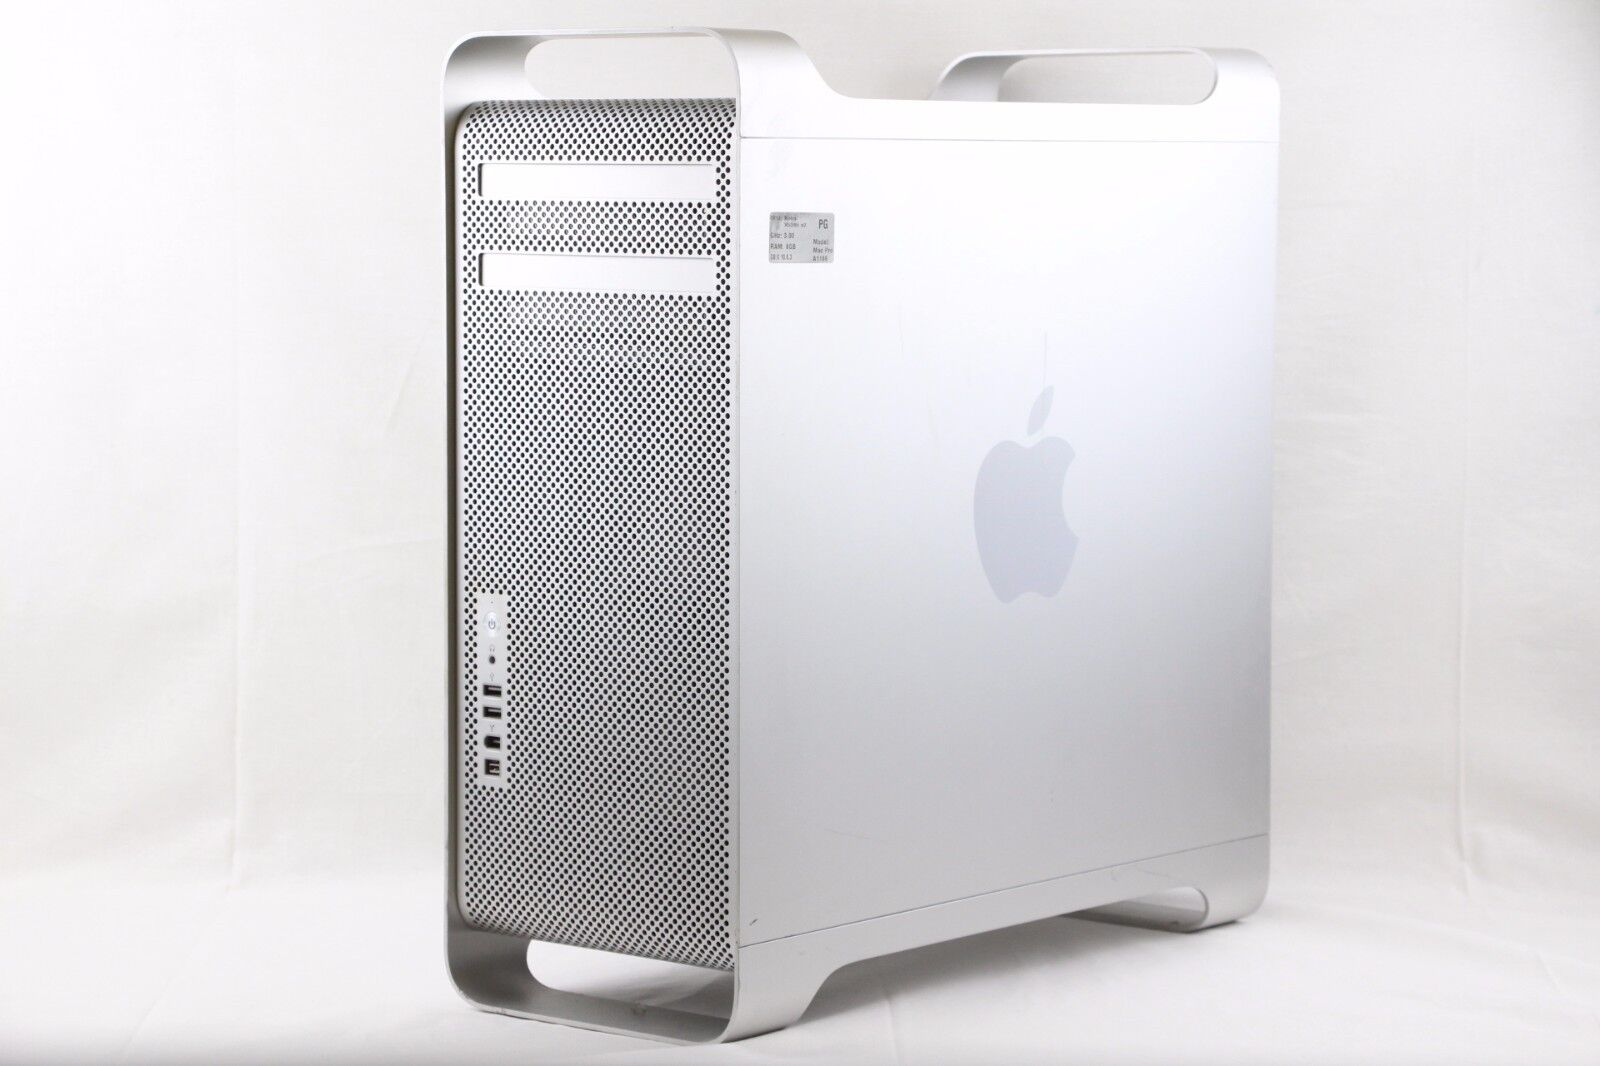 Apple Mac Pro A1186 3GHz Xeon 8 Core, 8GB RAM, 500GB HDD, GT 7300, 10.6.3 (AMX)